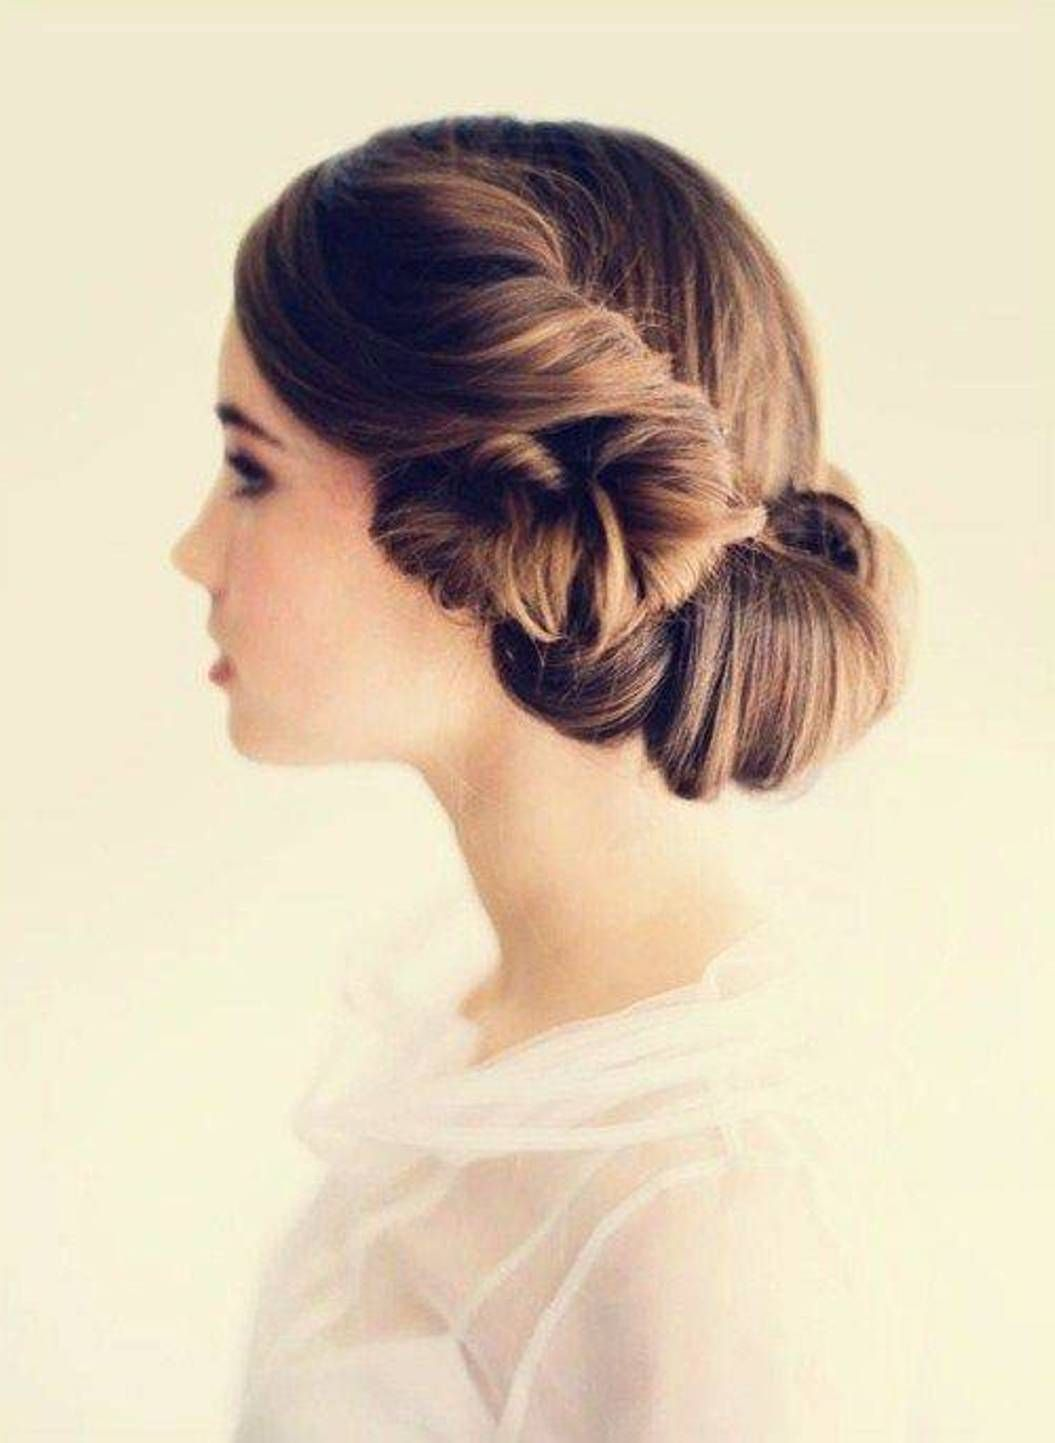 easy do with elegant look of side bun hairstyle : simple hairstyle